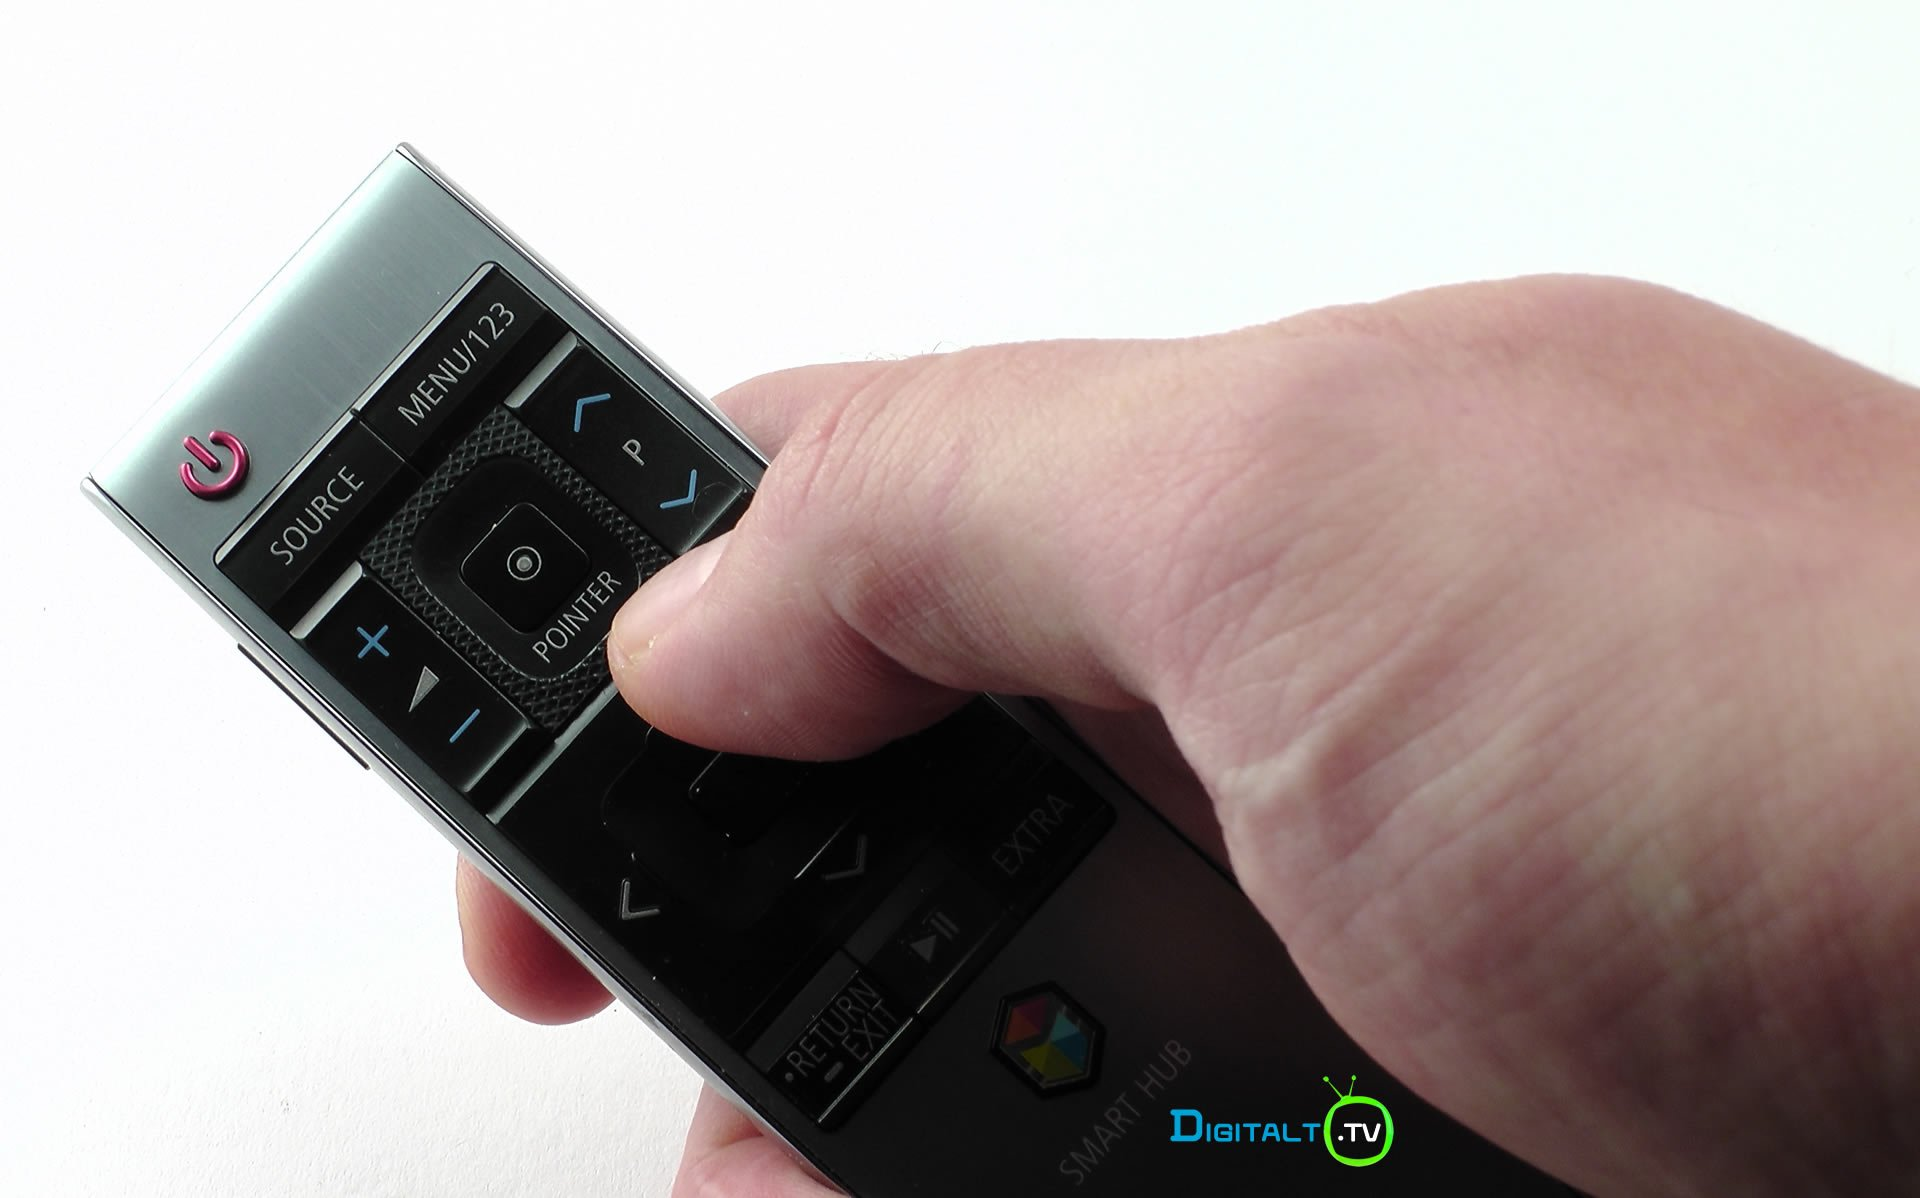 samsung smart remote pointer 2015